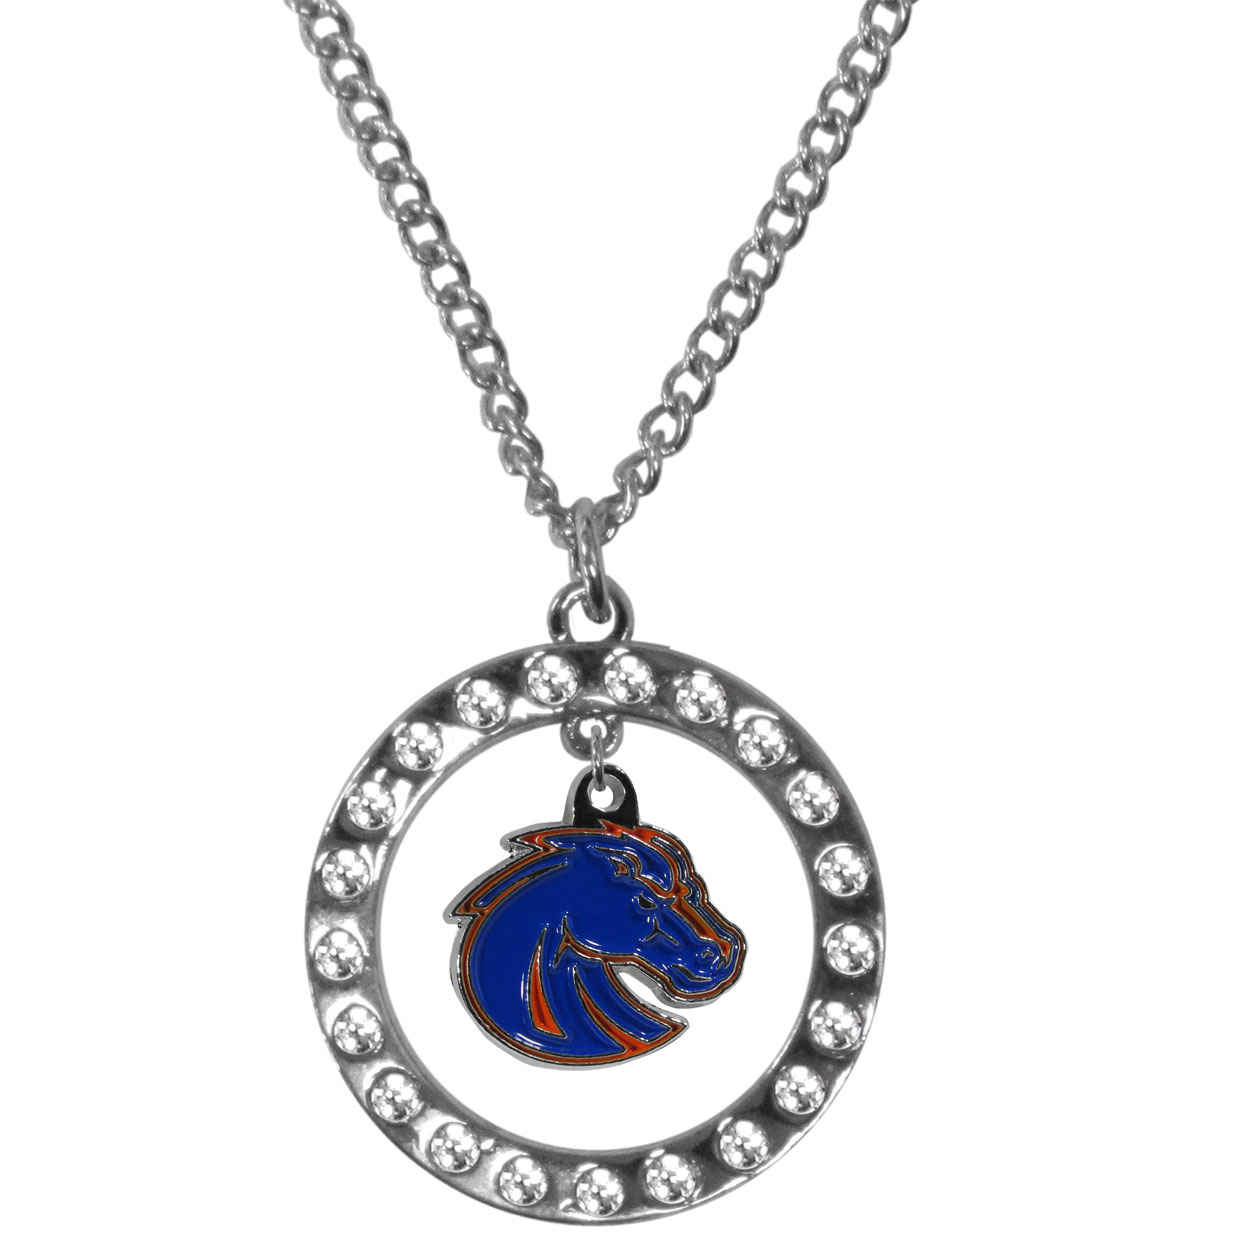 Boise St. Broncos Rhinestone Hoop Necklaces - Our Boise St. Broncos rhinestone hoop necklace comes on an 18 inch chain and features a hoop covered in rhinestones with a high polish chrome finish and a cast and enameled team charm dangling in the center.